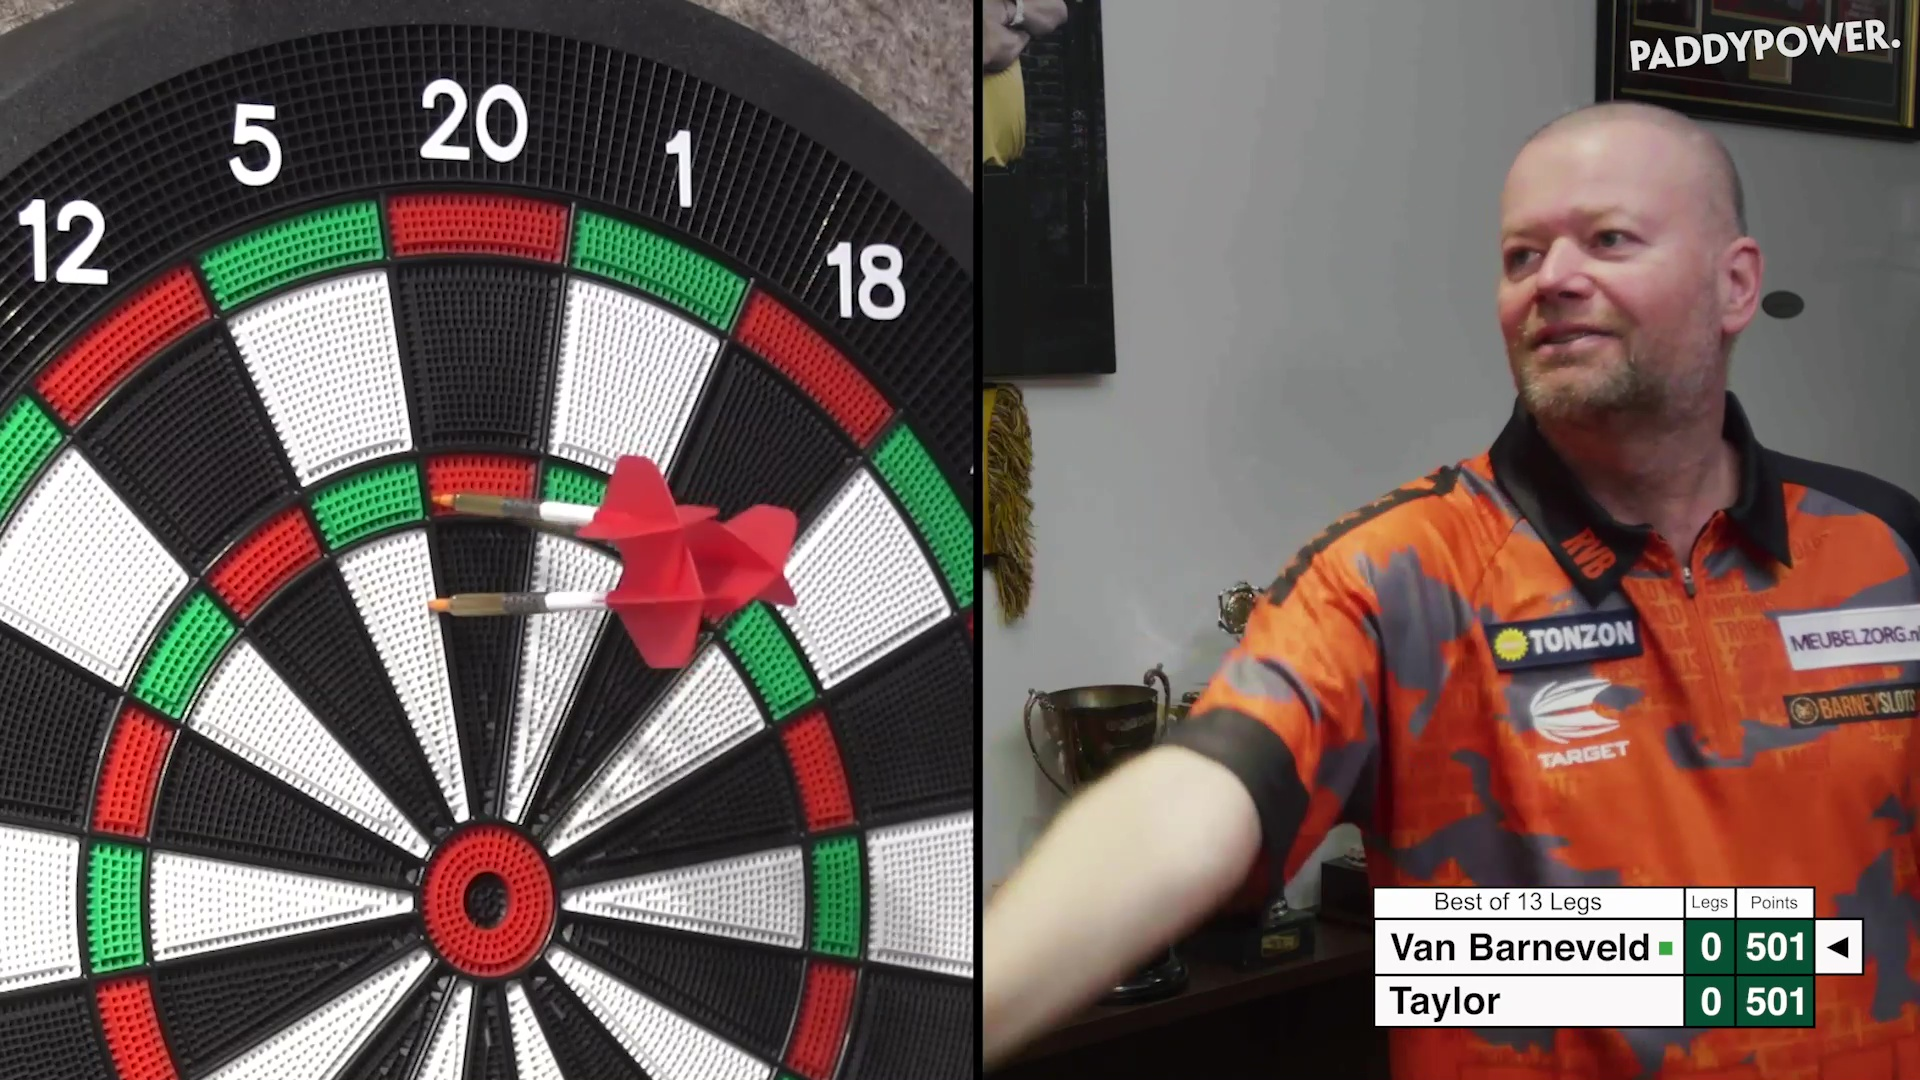 Phil Taylor vs Barney live stream FREE: Watch full replay as Van Barneveld and The Power put on a show in - The Sun